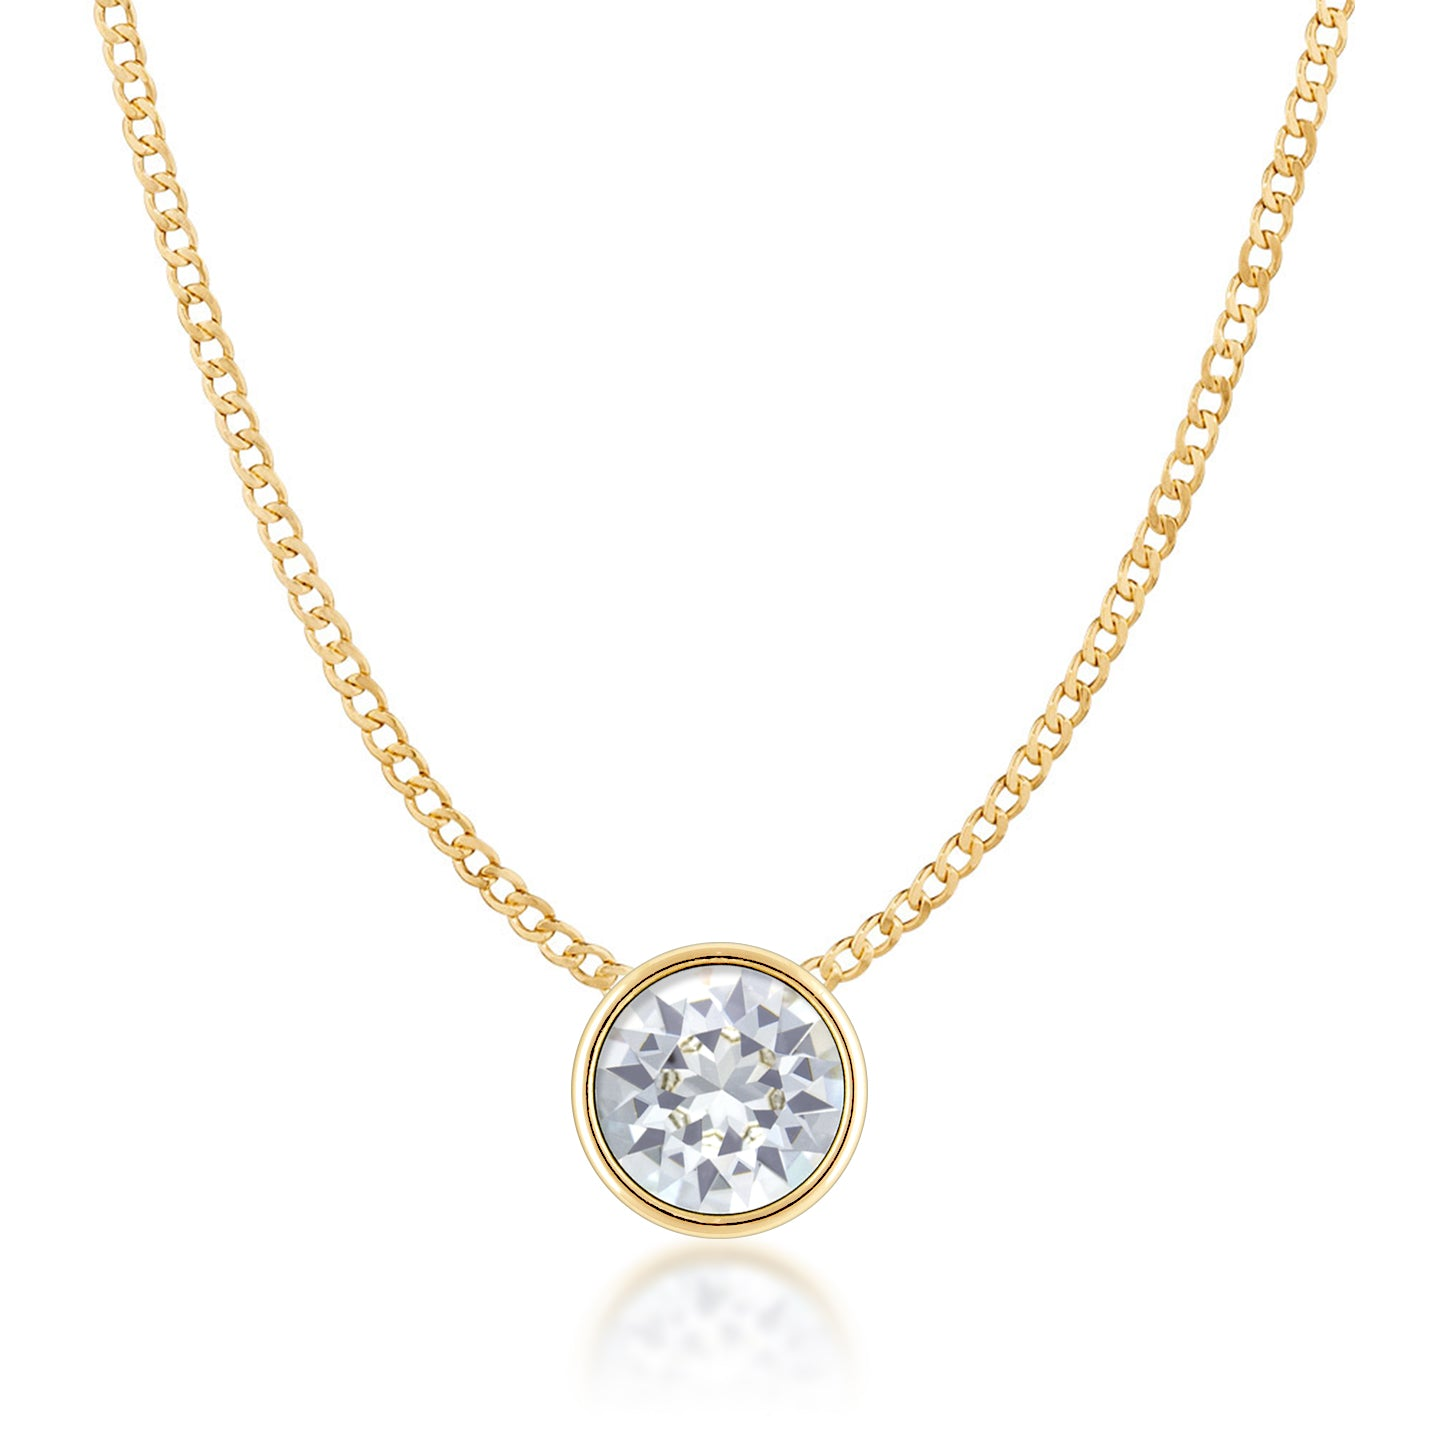 Harley Small Pendant Necklace with White Clear Round Crystals from Swarovski Gold Plated - Ed Heart